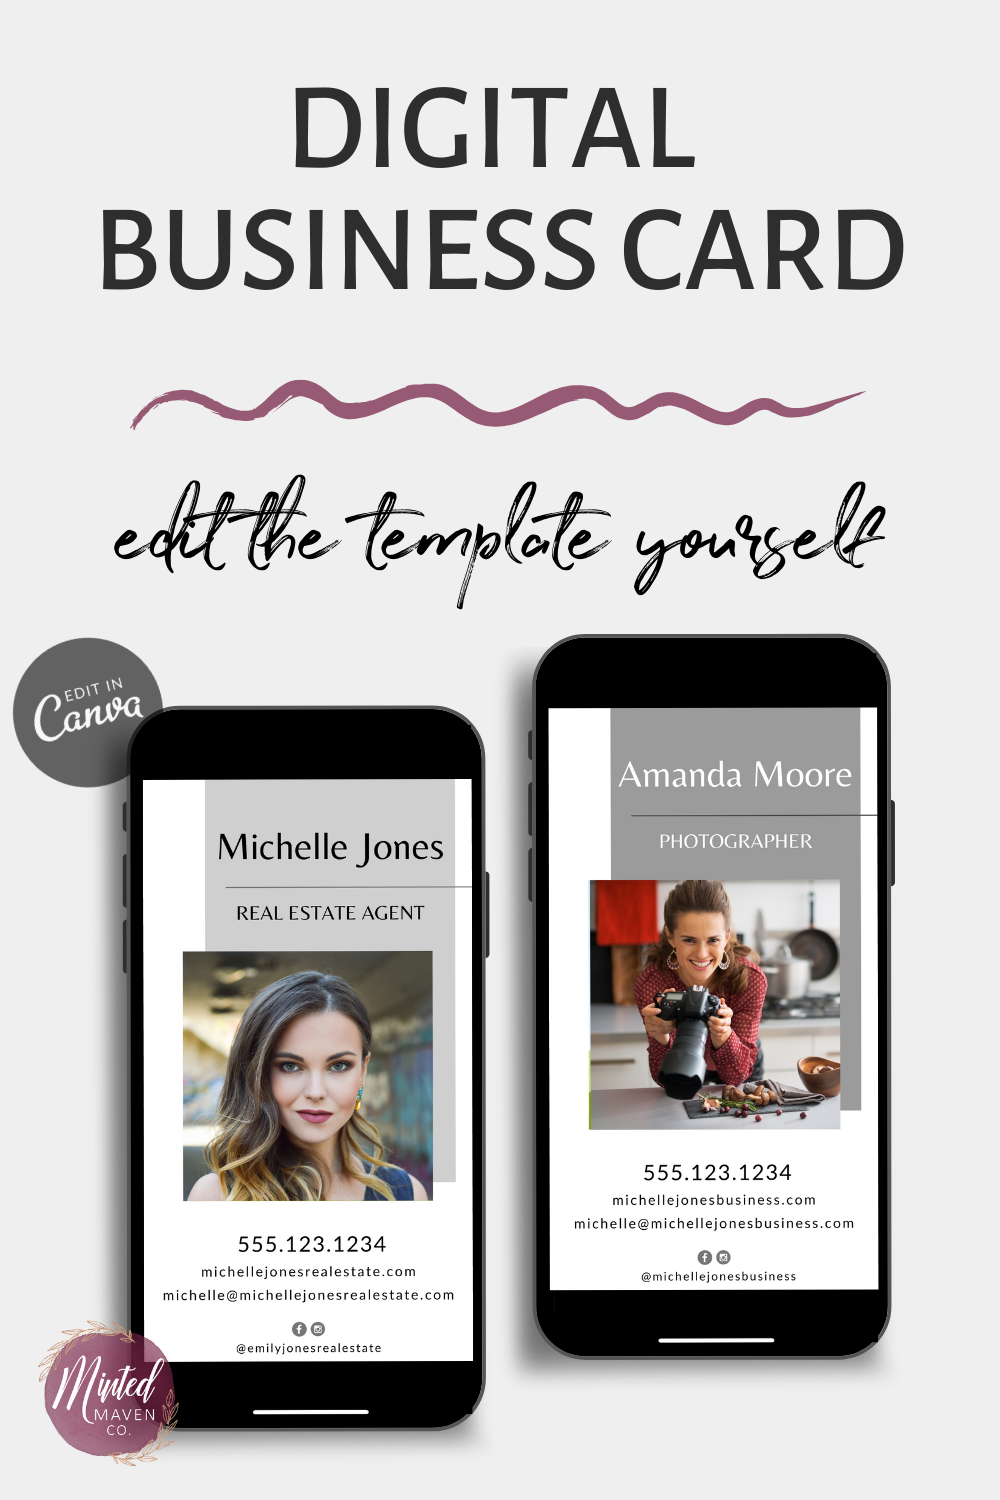 Modern Digital Business Card Template Easy To Edit In Canva Digital Business Card Modern Business Cards Design Business Card Modern